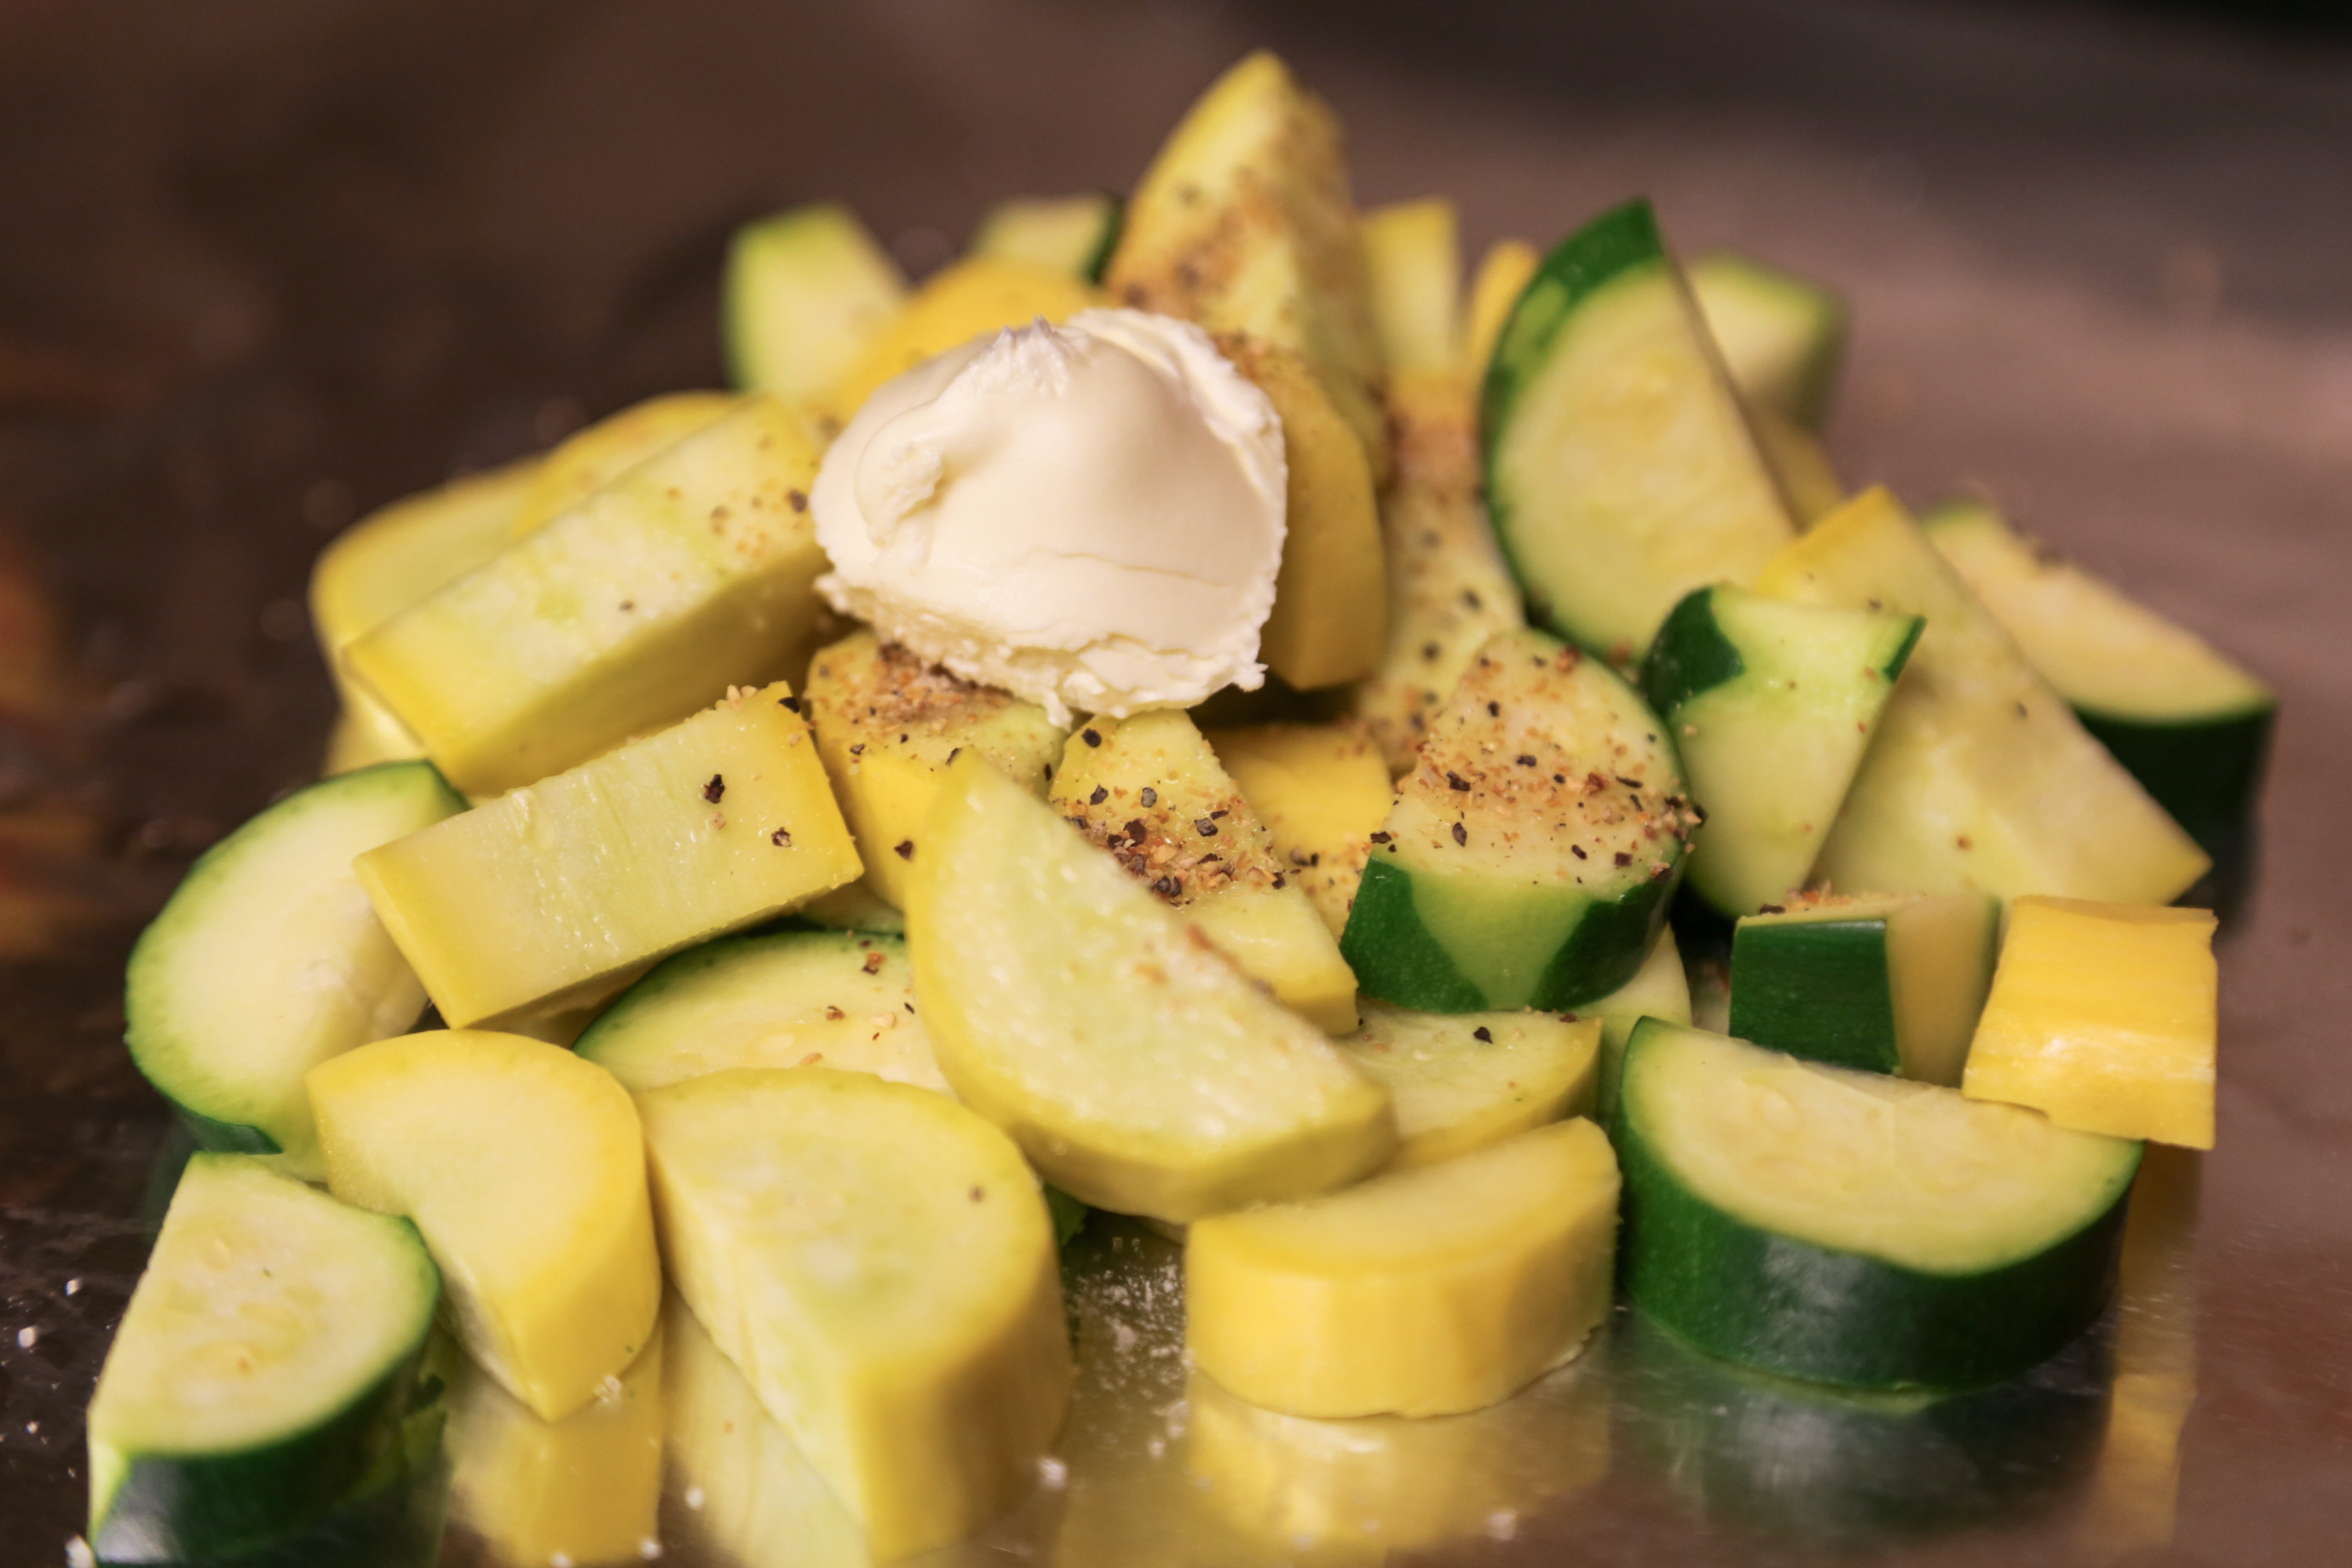 How To Grill Squash  How to Grill Squash and Zucchini in Foil